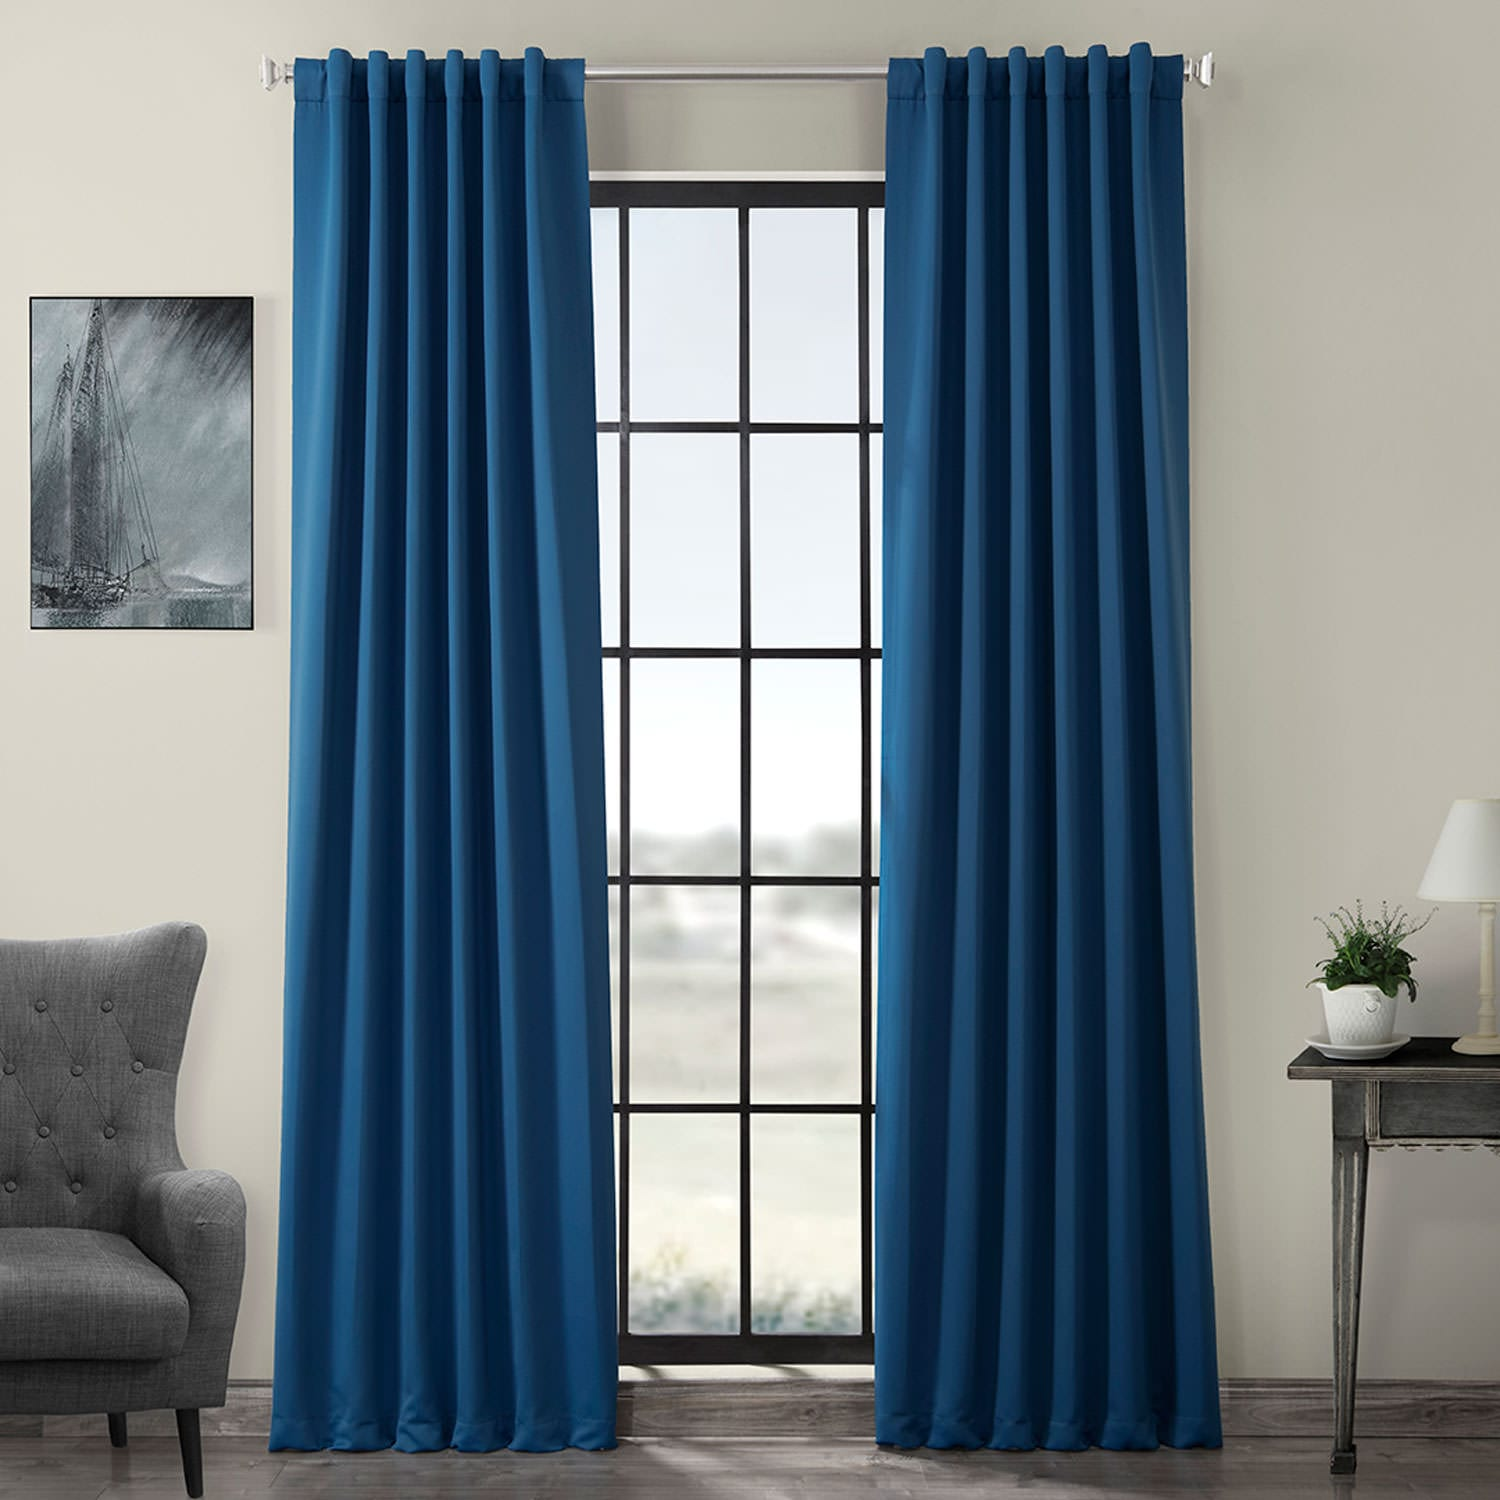 Hacienda Blue Blackout Room Darkening Curtain